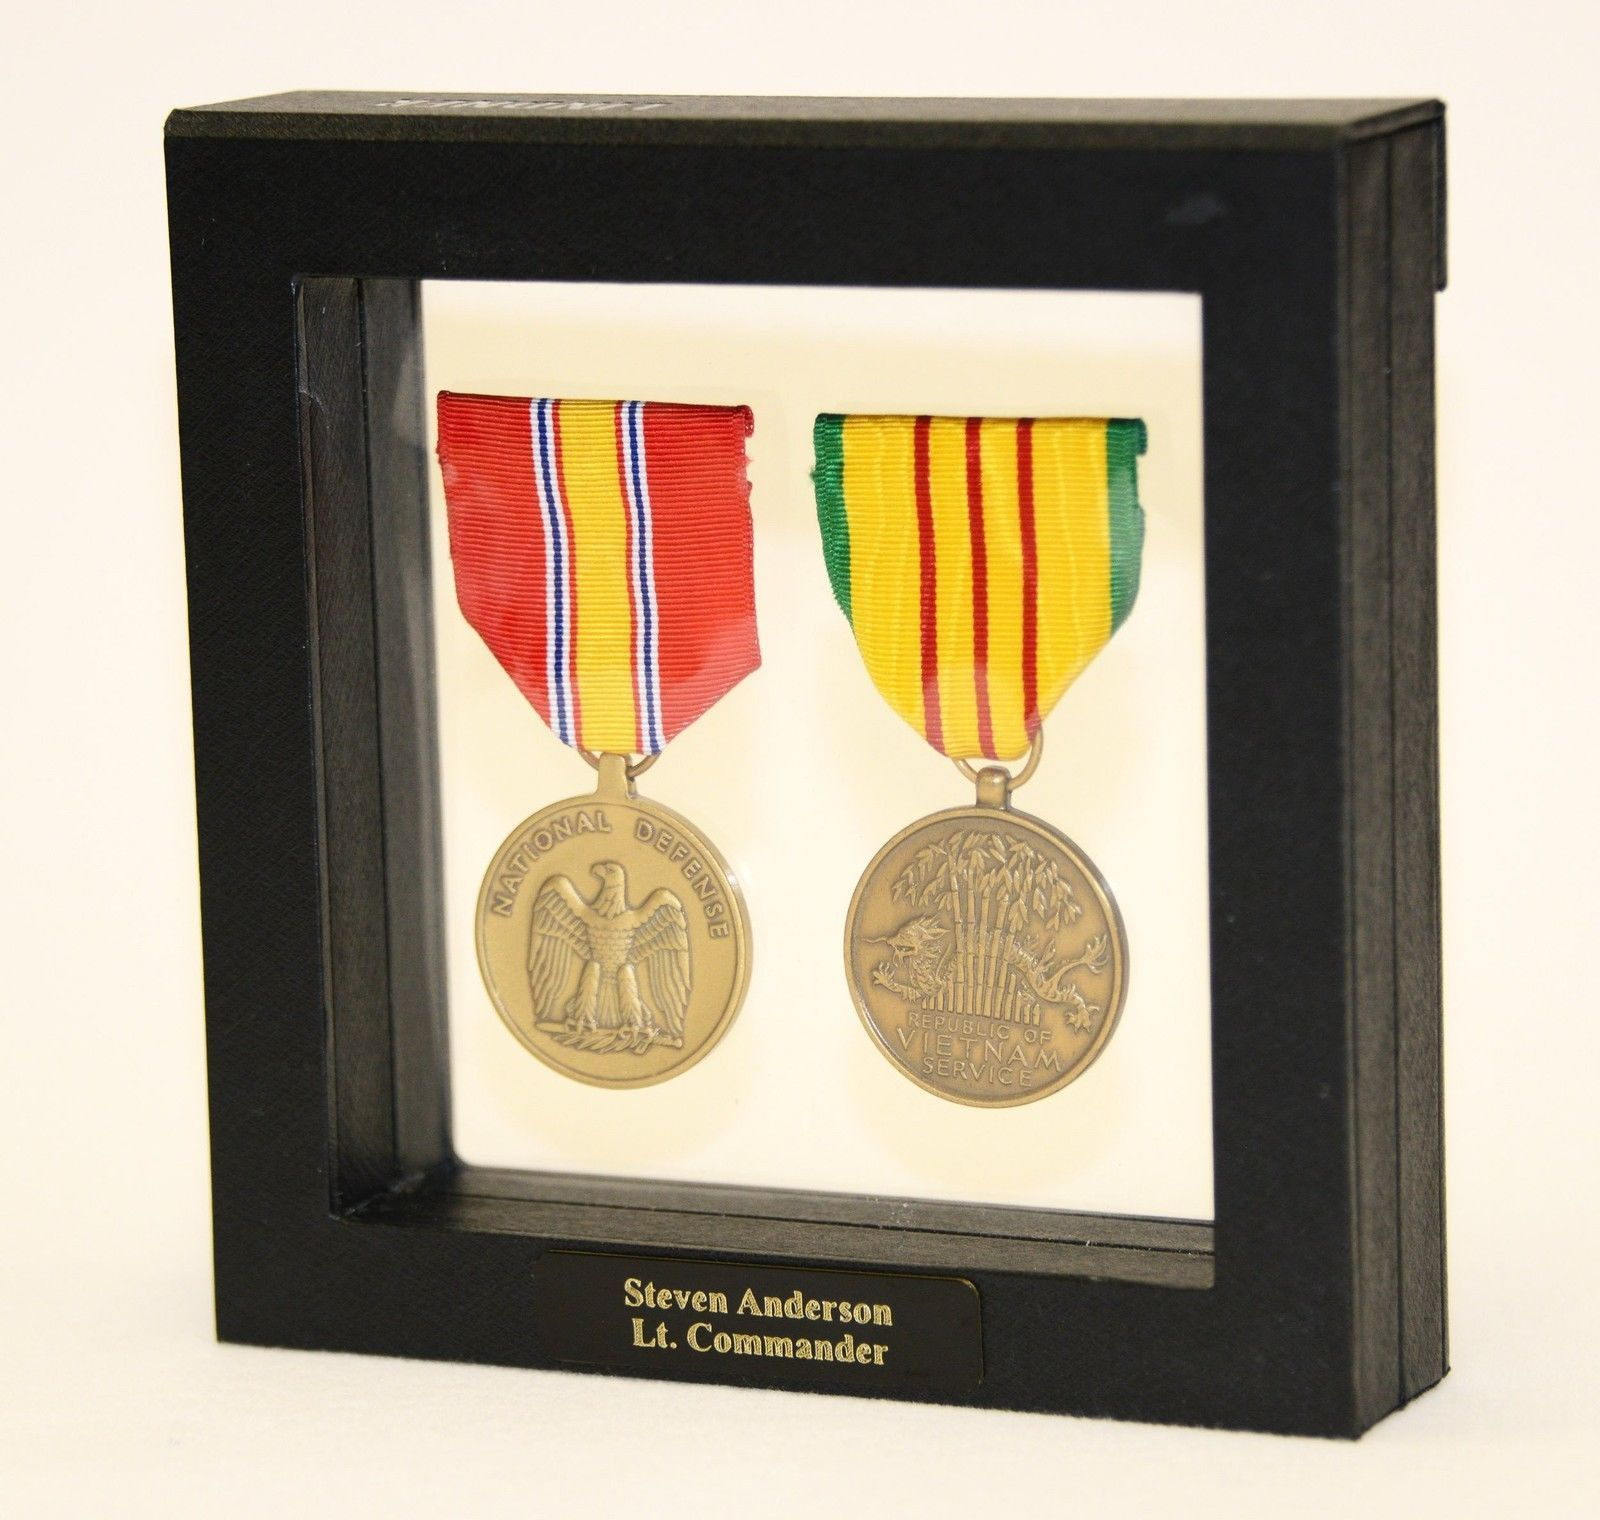 1-2 Military Medals Pins Patches Badge Insignia Display Case Box ...